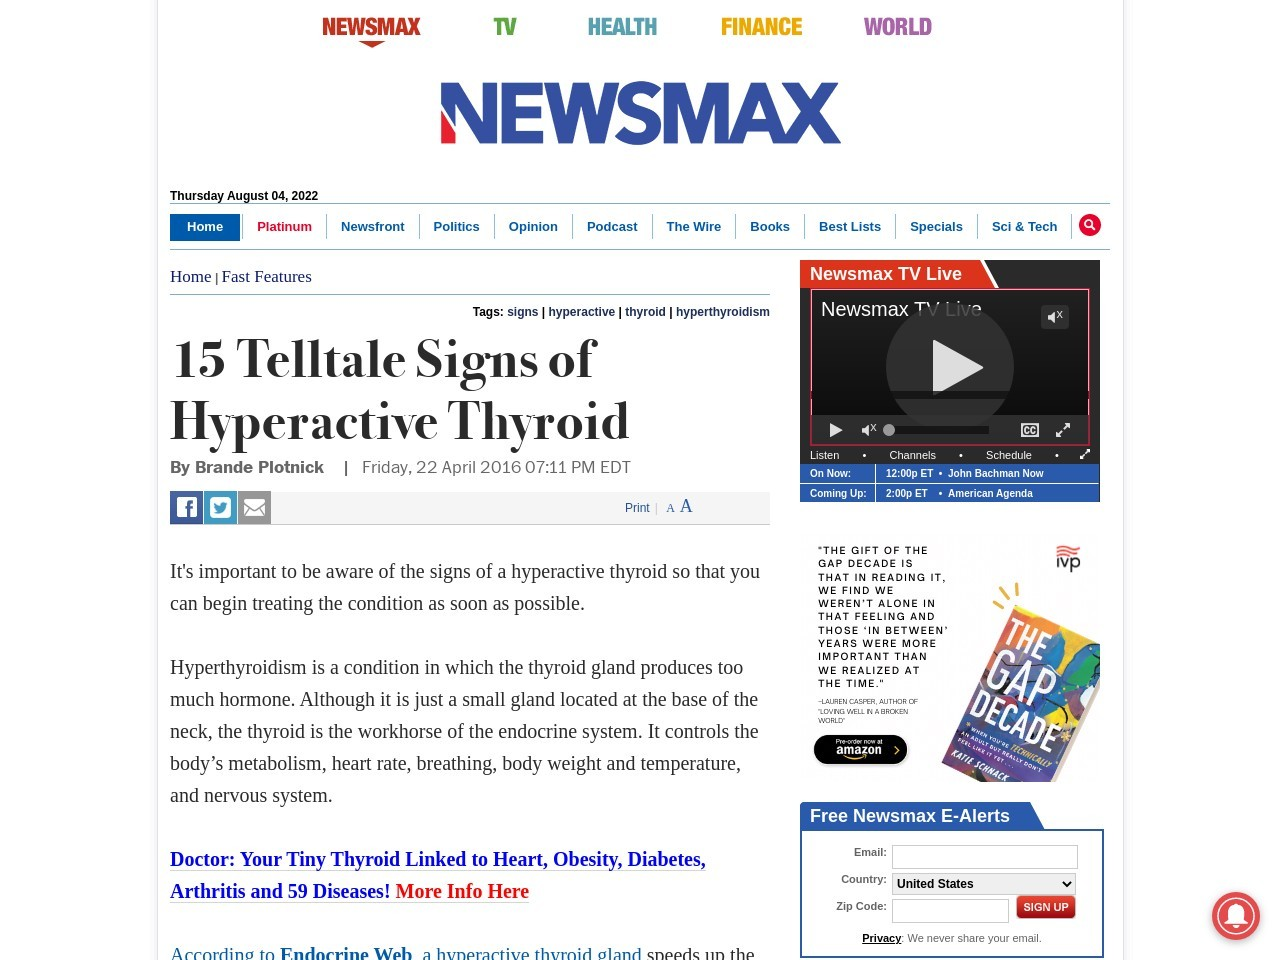 15 Telltale Signs of Hyperactive Thyroid